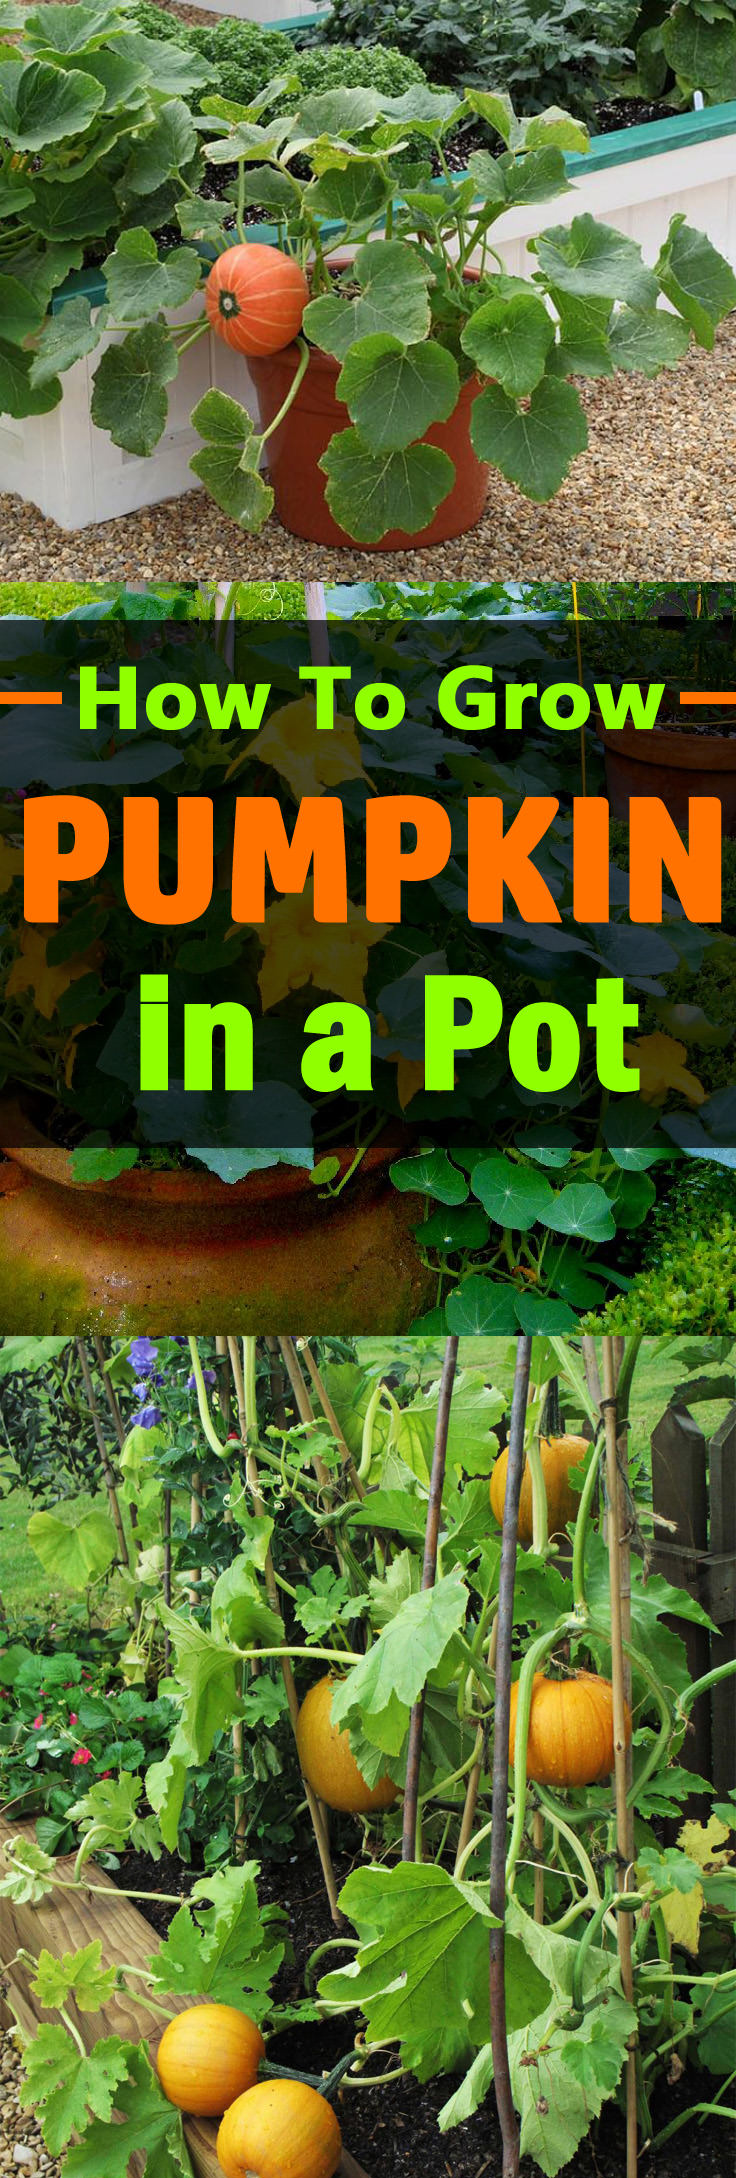 Learn How To Grow Pumpkins In Pots Growing Containers And Is Not